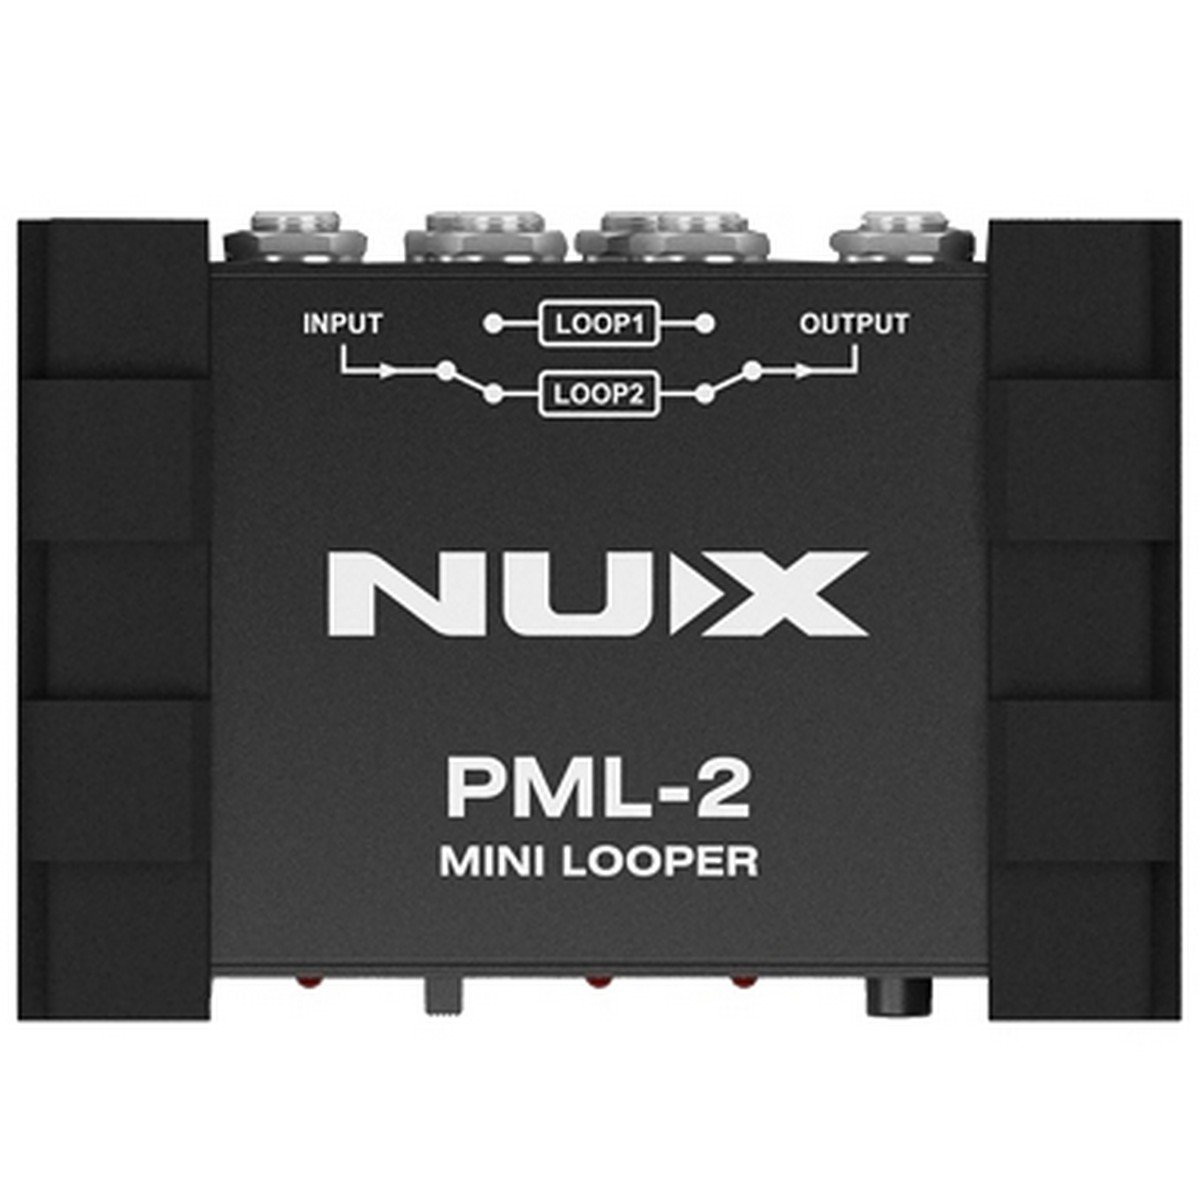 Nux PML-2 | Two Audio Mini Looper by NUX